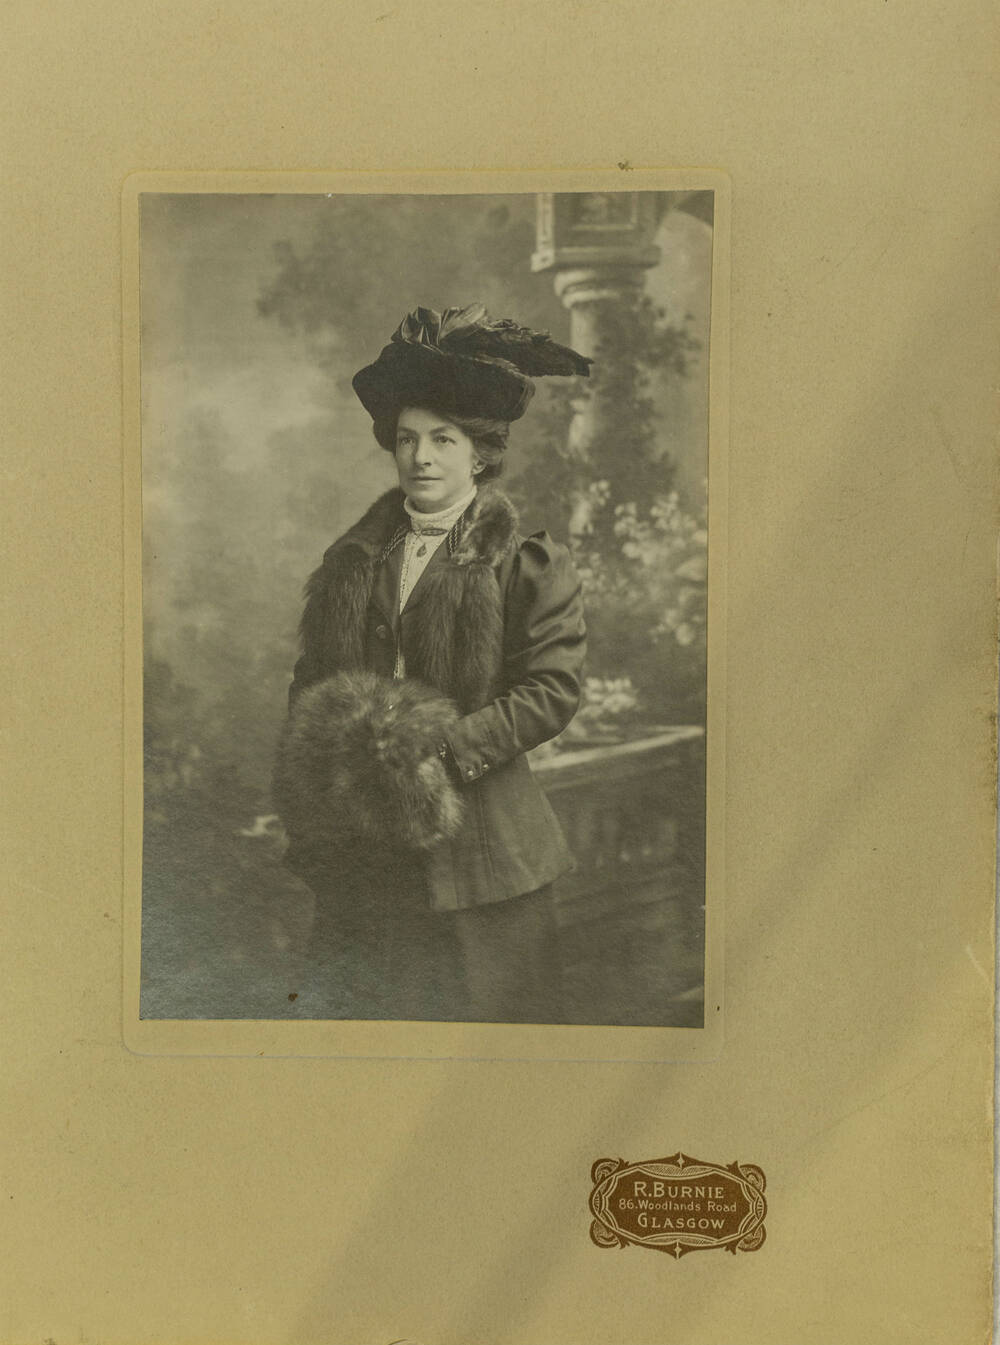 A black and white photo of a woman wearing a large hat, an animal fur around her neck and holding a fur muff.